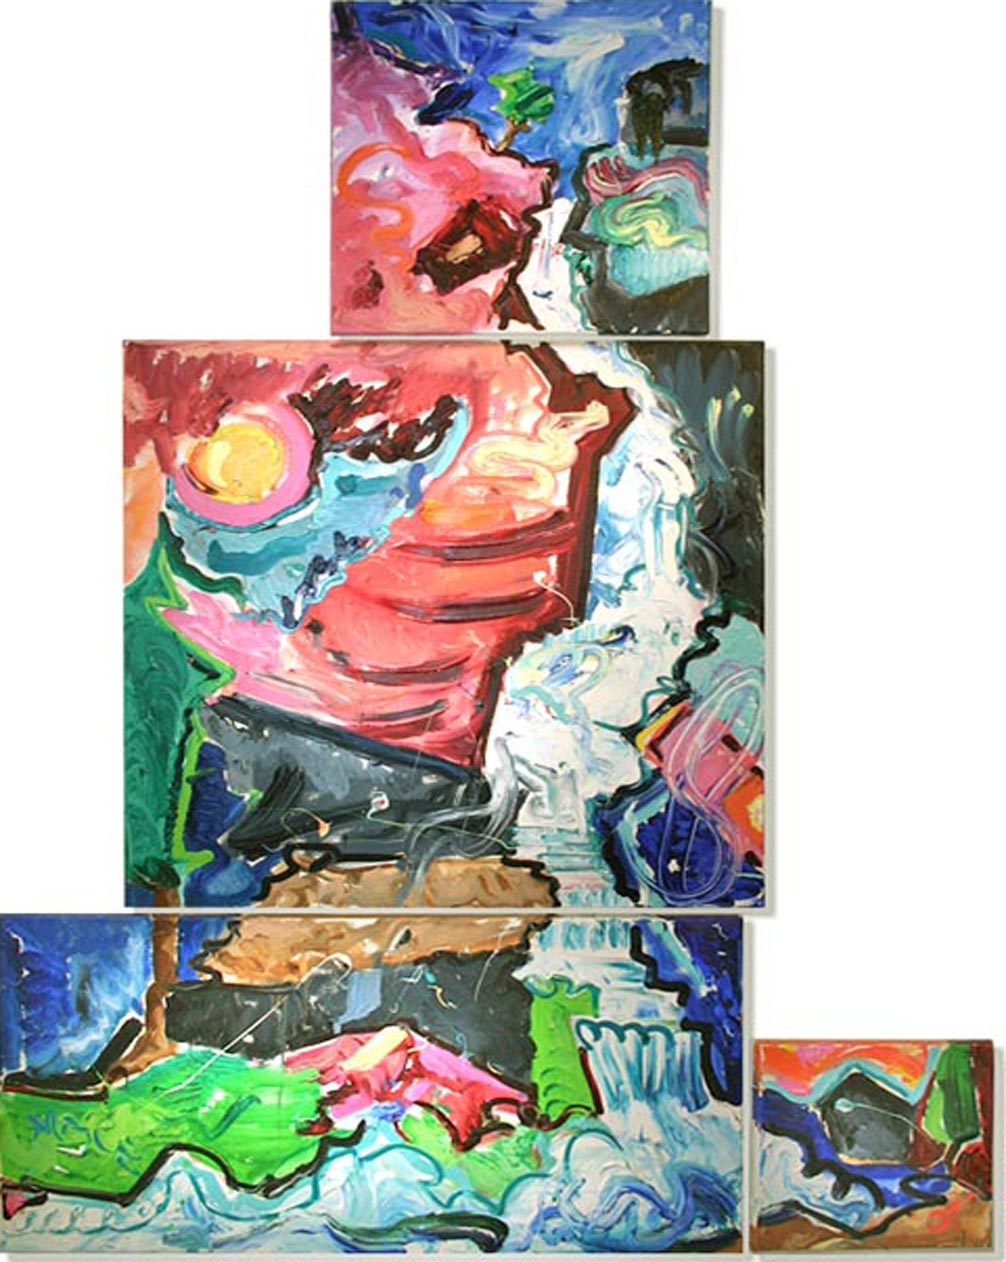 """NFS A001 2007 'Waterfall Abstract' - 4-part Polyptych 48""""x60"""" overall"""